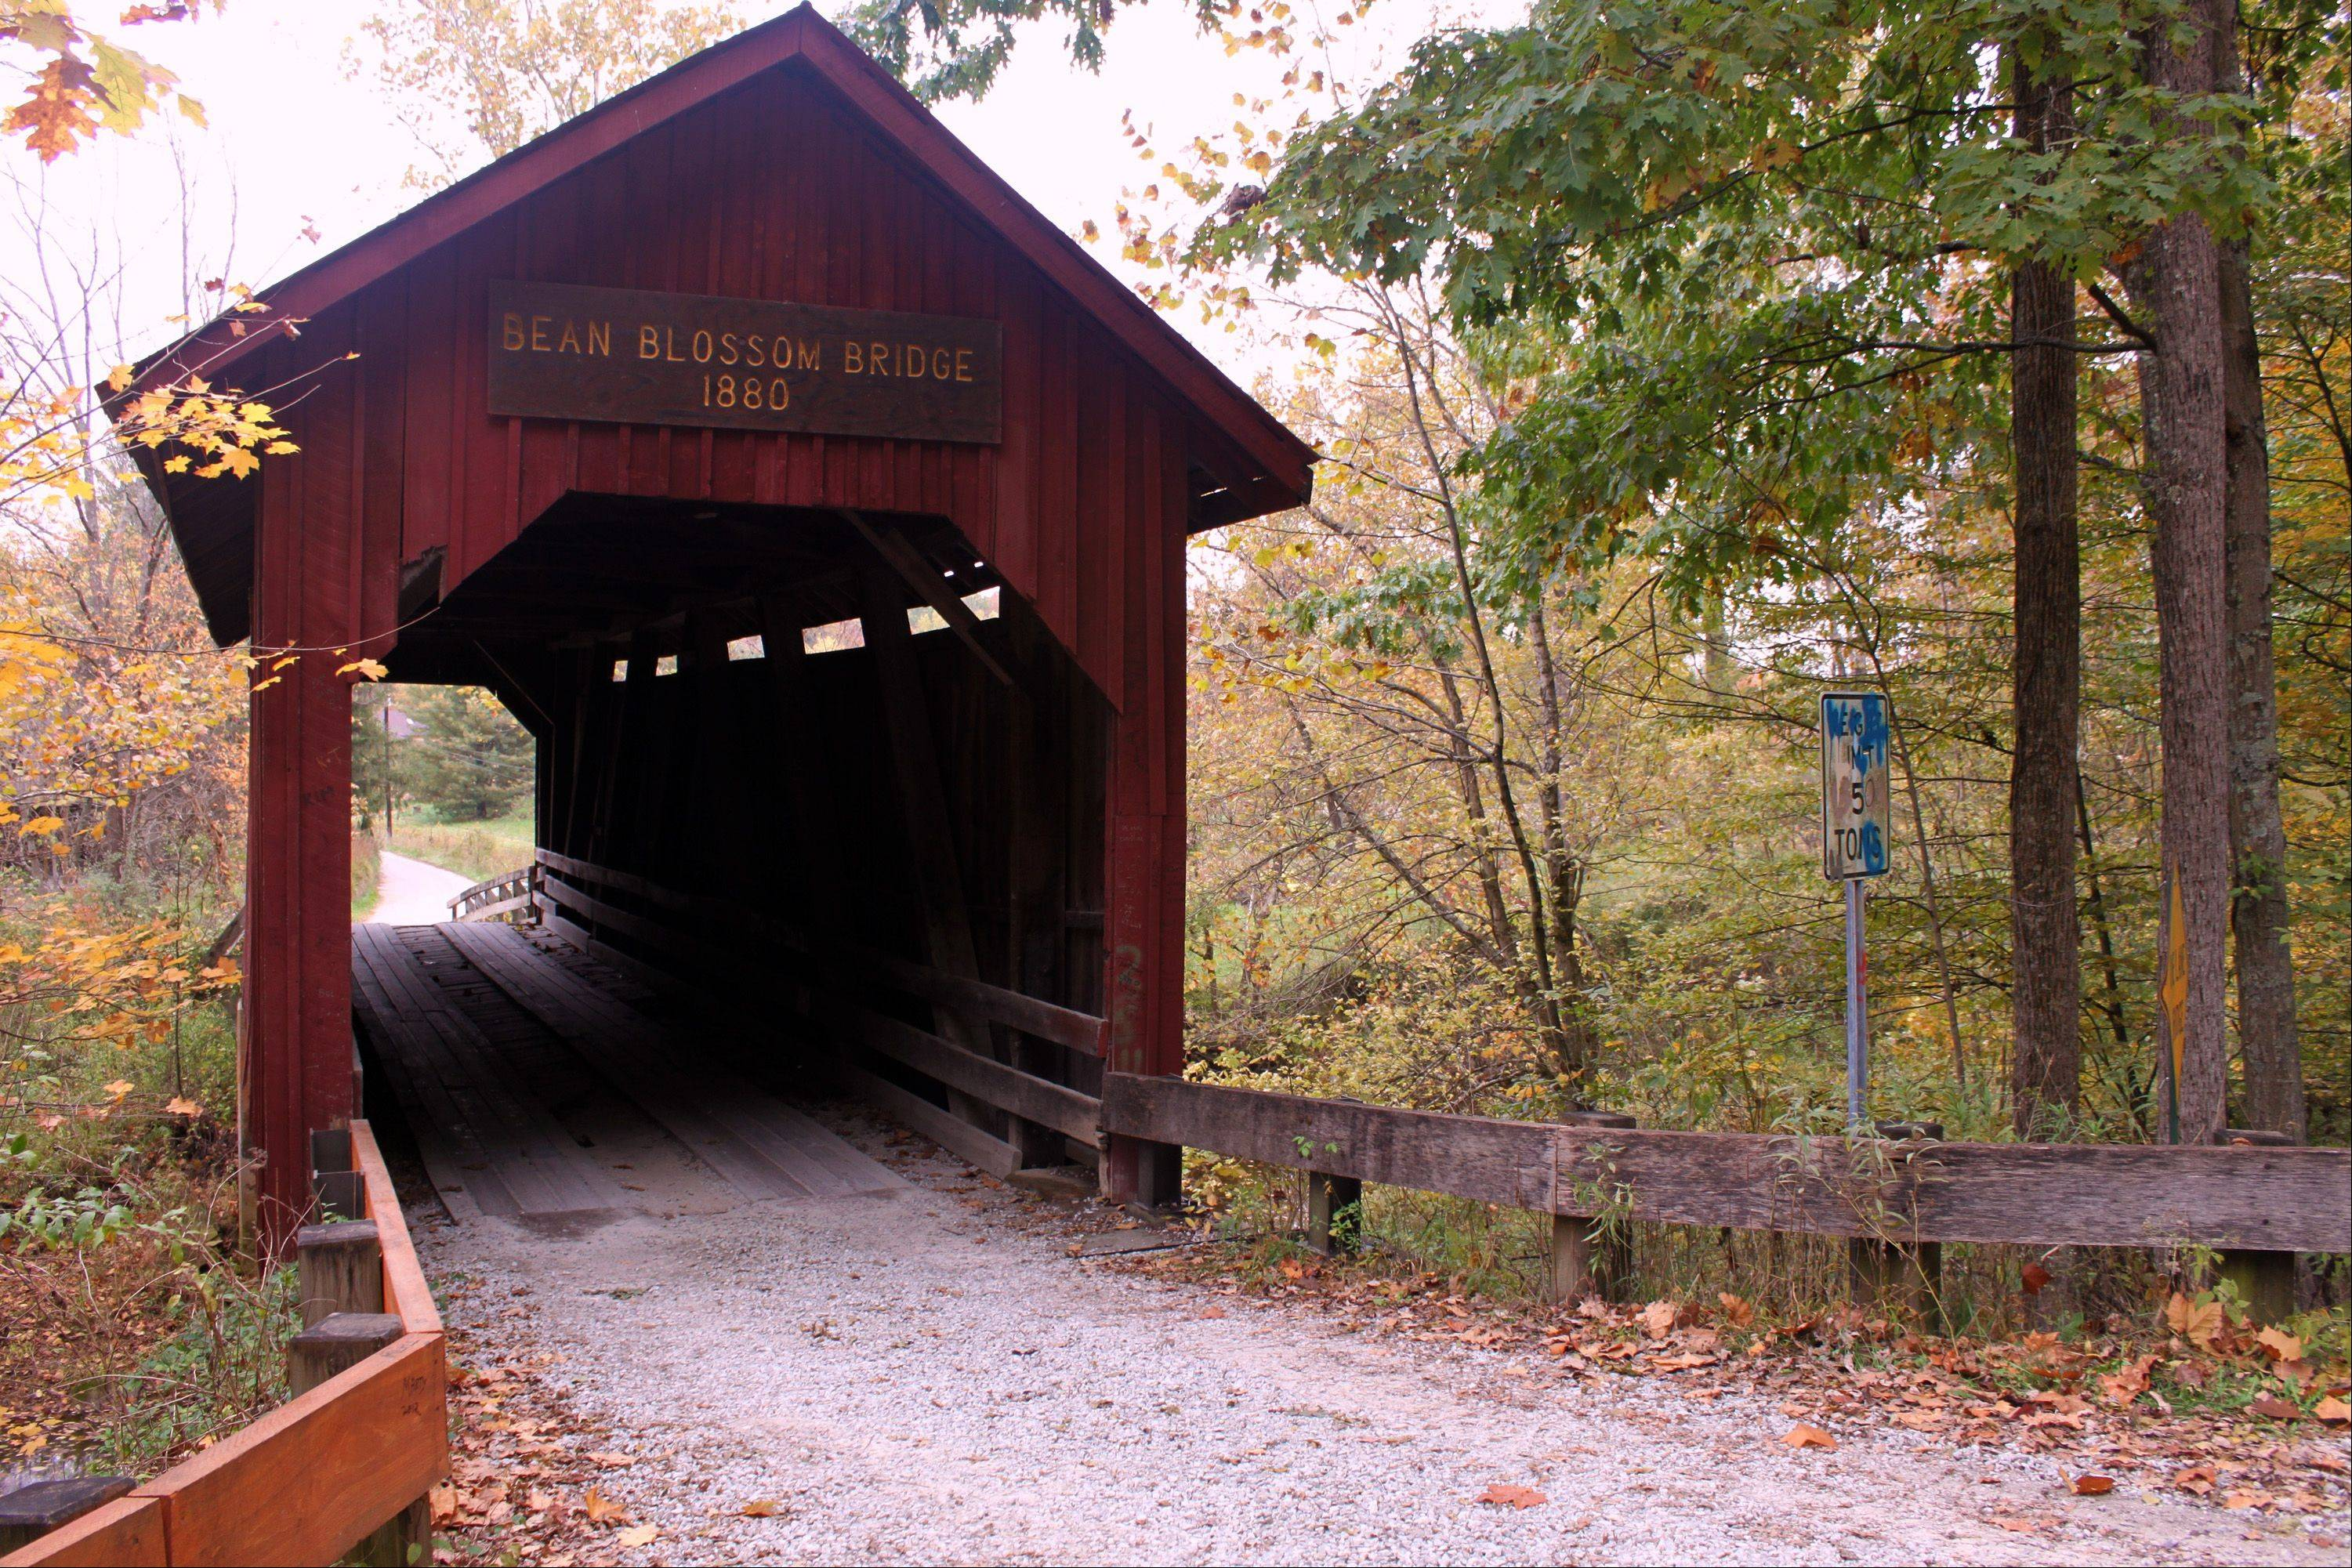 The photo of this rustic covered bridge was taken in Bean Blossom, IN. in the scenic Brown County Indiana. It just seemed to capture the beauty of the season's fall colors and also provided a link to seasons past.